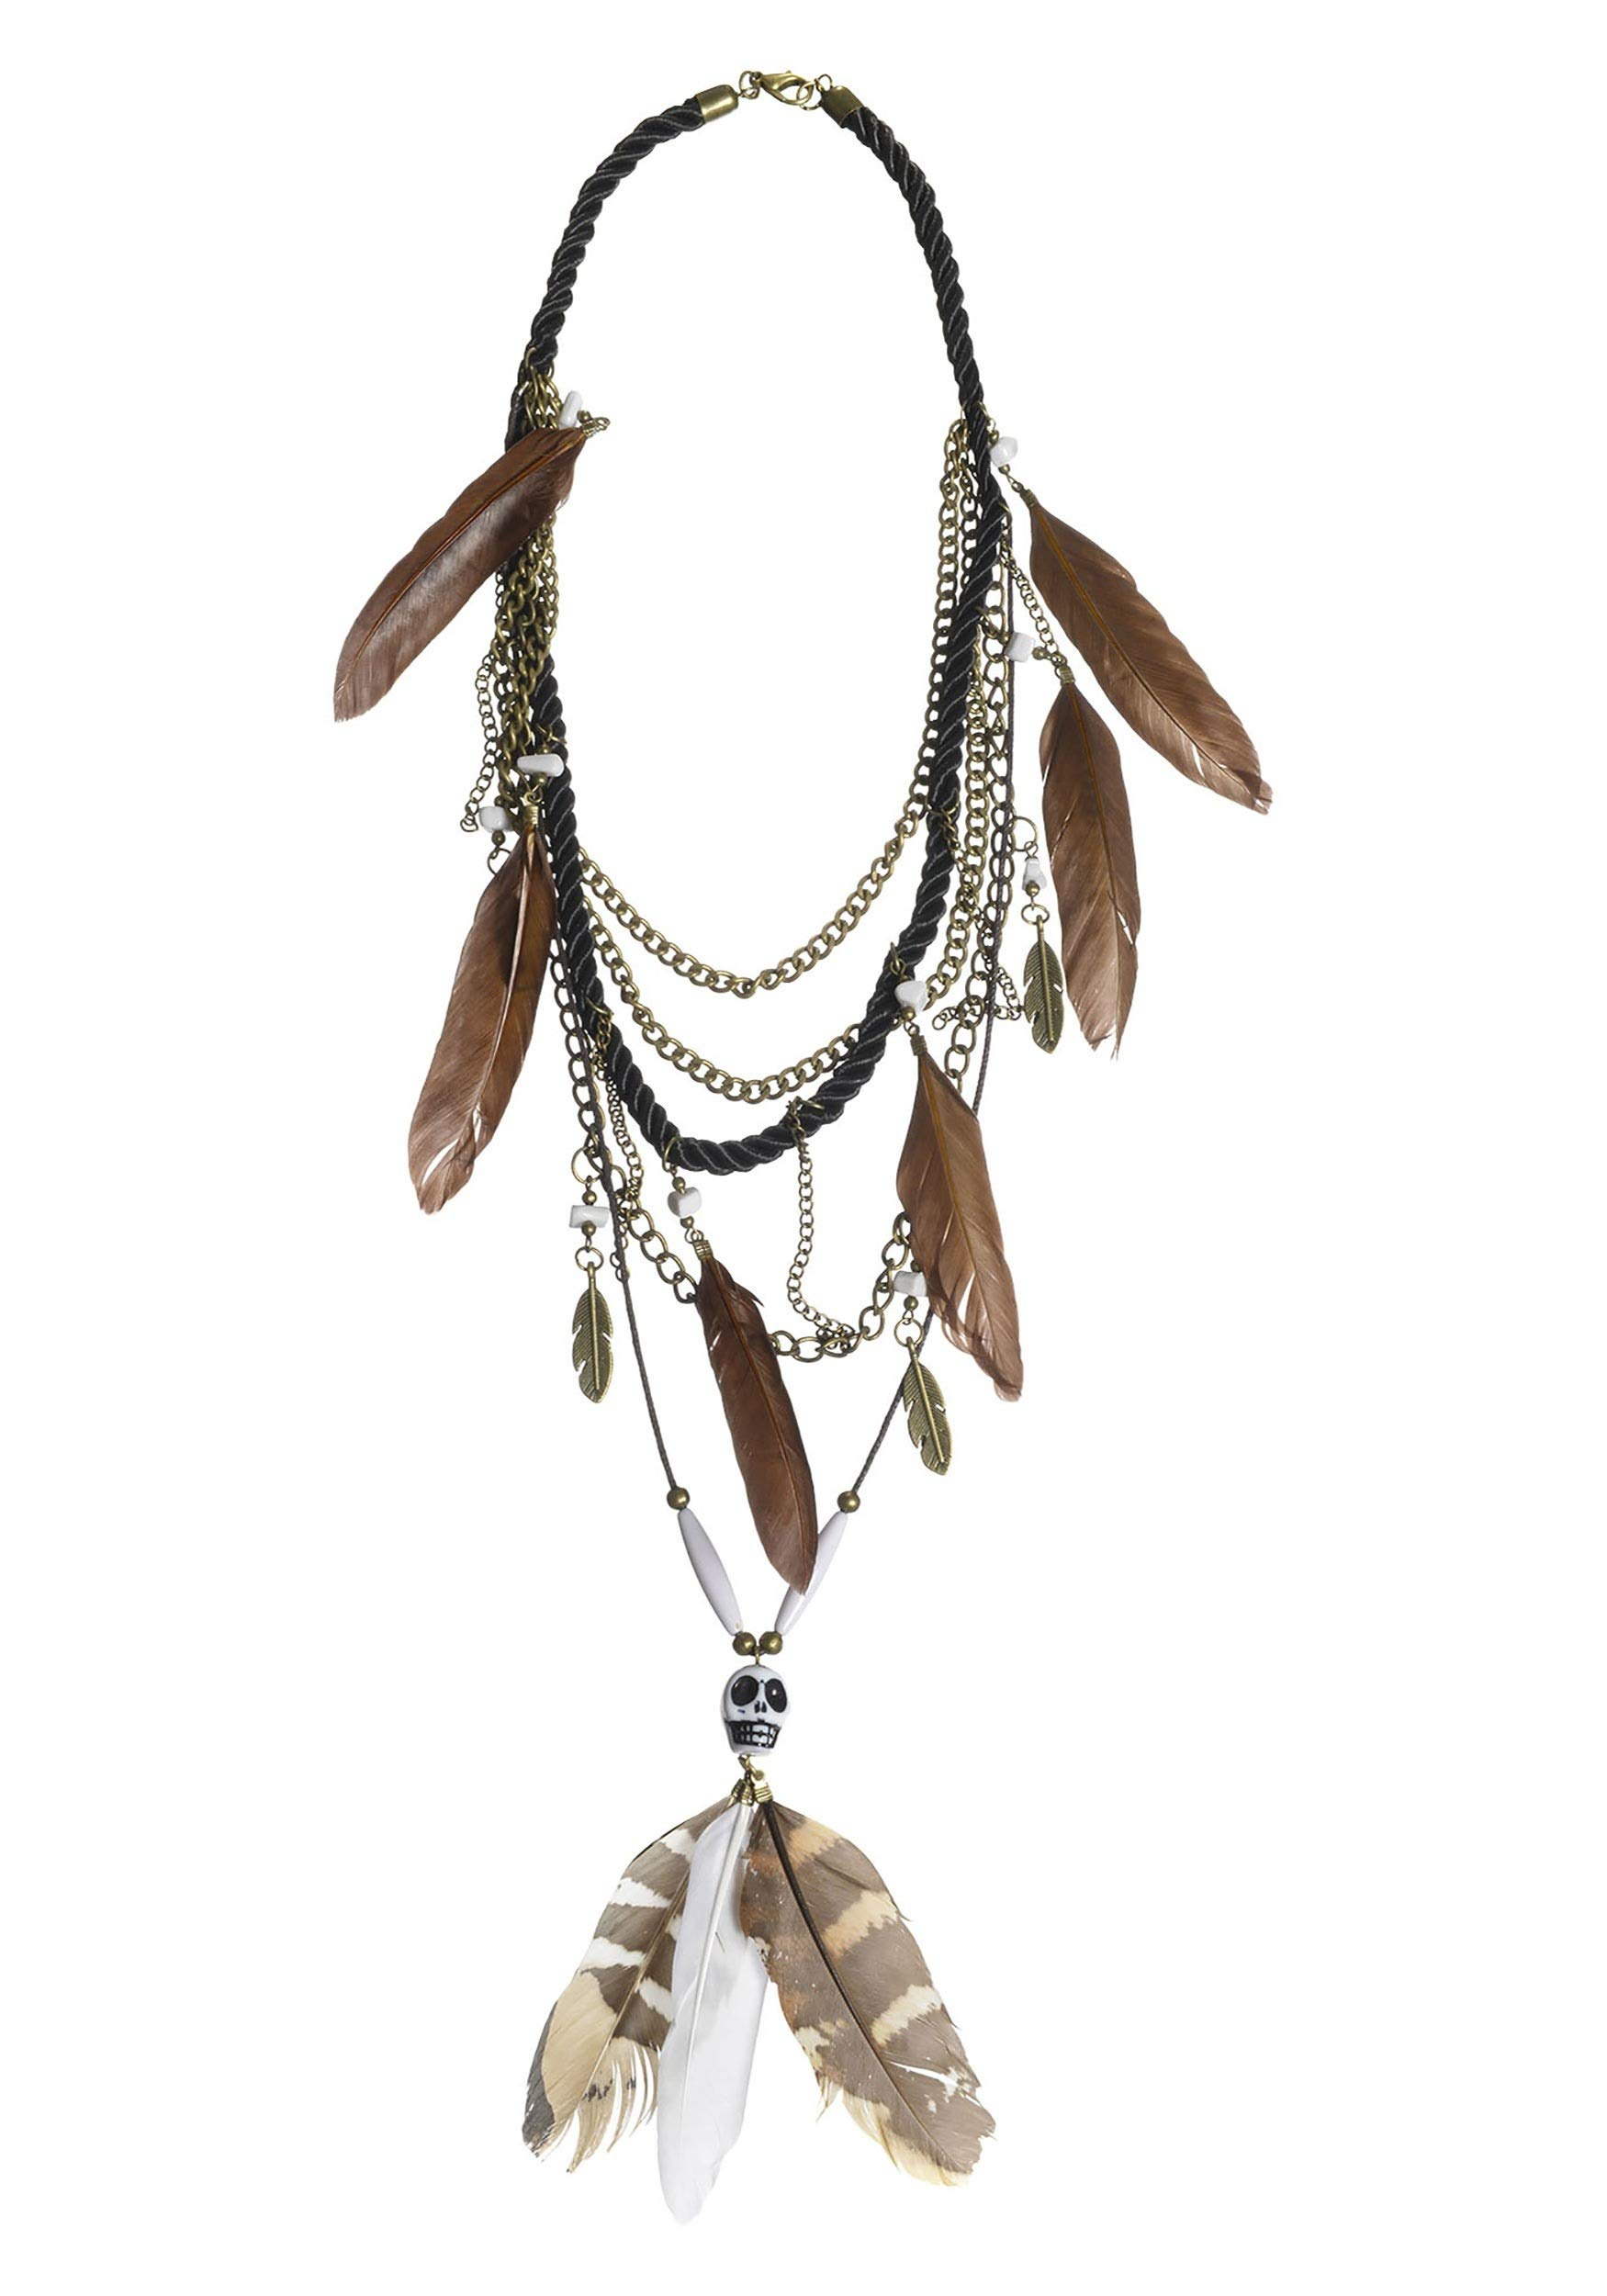 Suit Yourself Witch Doctor Multi-Strand Necklace for Adults, Made of Plastic and Feathers, Measures 25 Inches Long by amscan